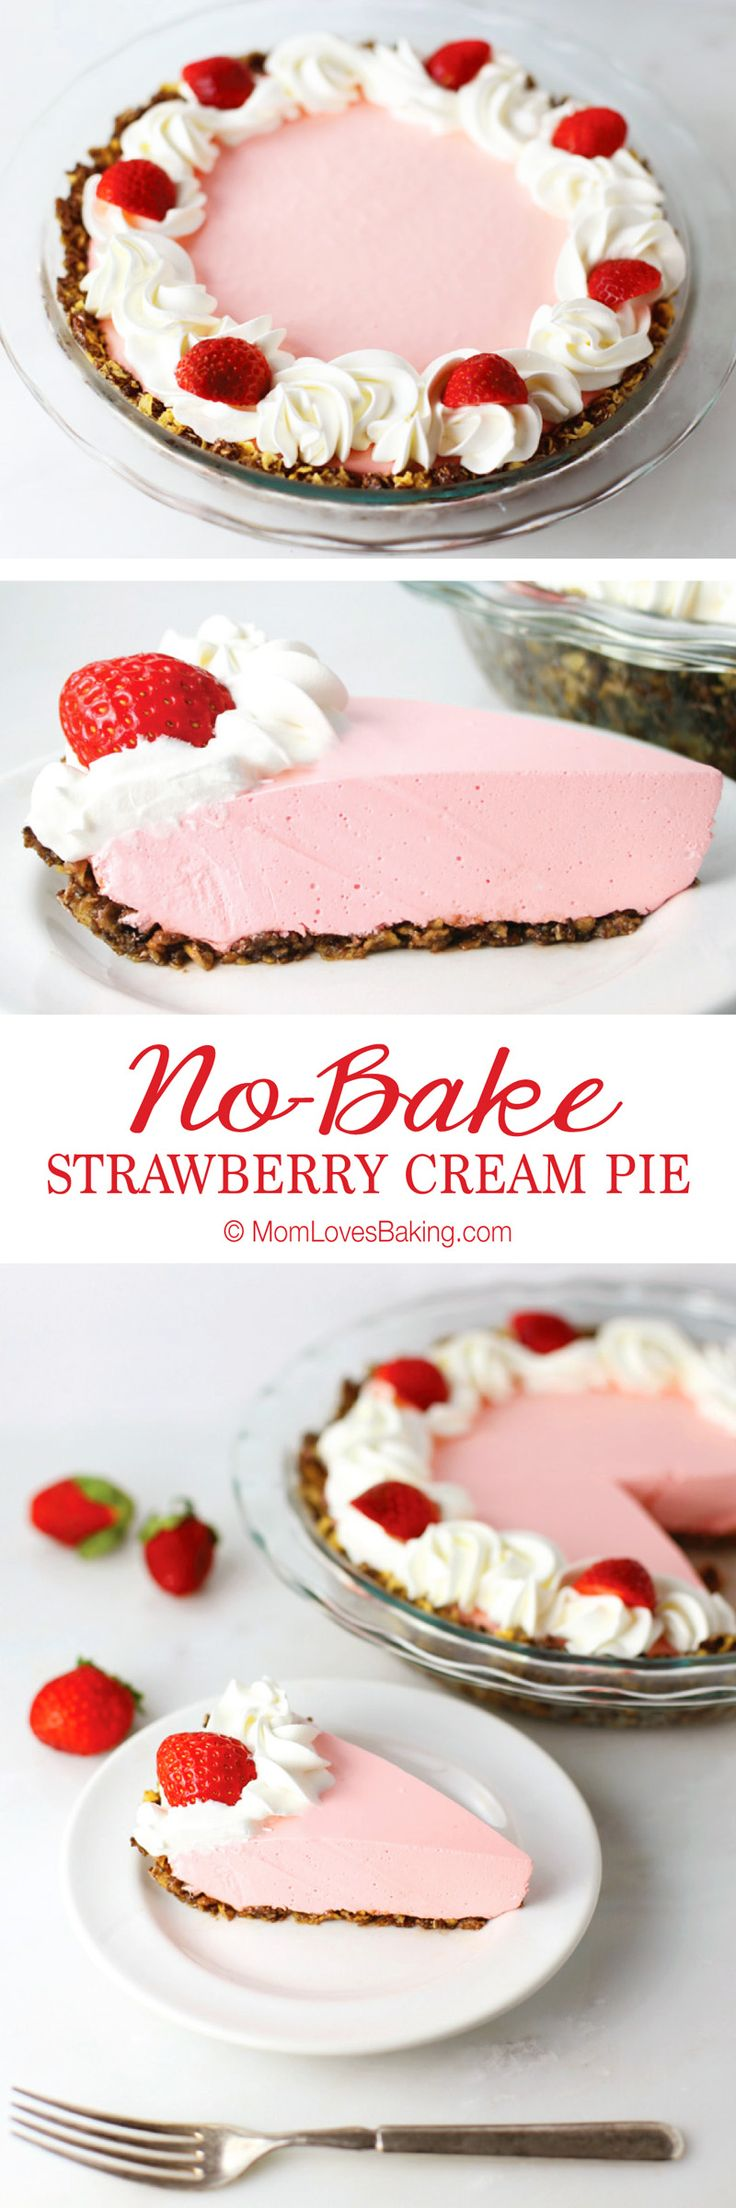 No-Bake Strawberry Cream Pie - light and airy with a delightful crust made of Honey Bunches of Oats Chocolate. Easy to make and it's gluten free! #HBOChocGF [ad]